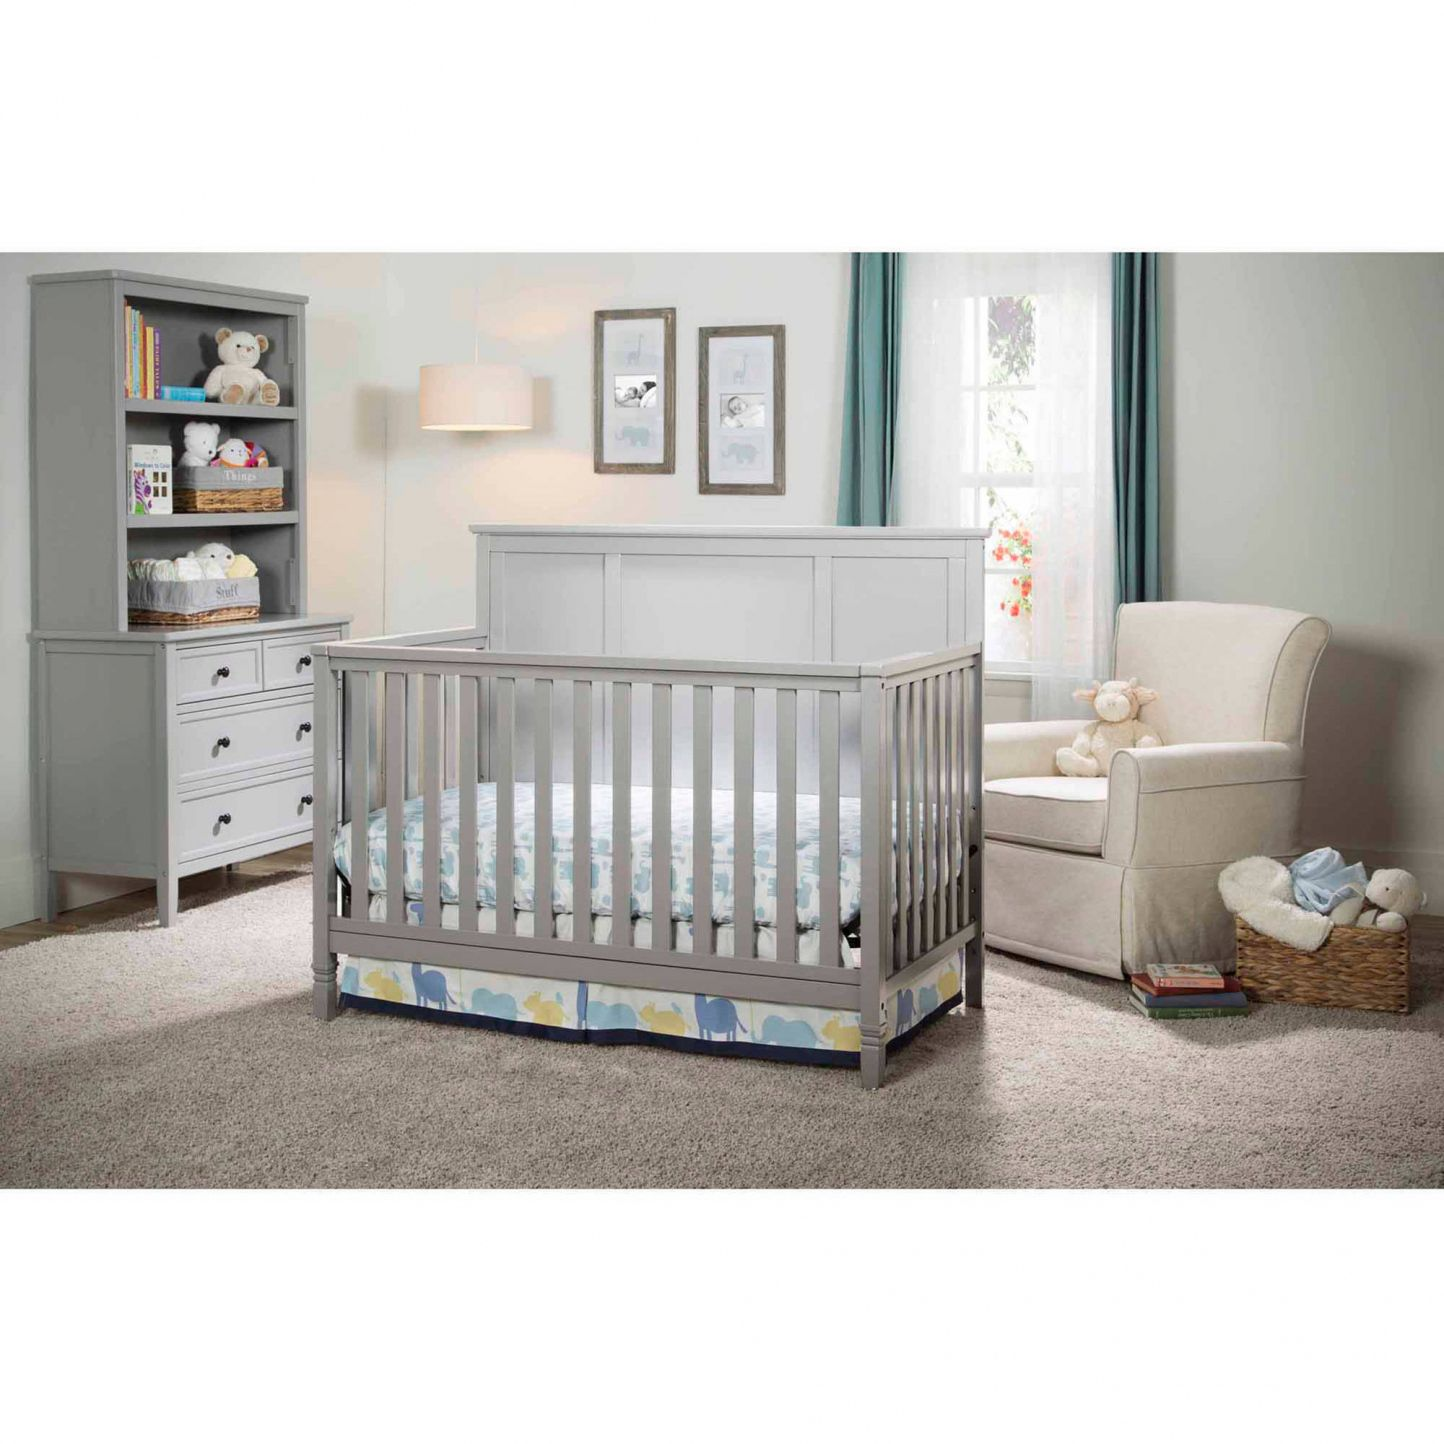 Baby Furniture at Walmart - Lowes Paint Colors Interior Check more ...